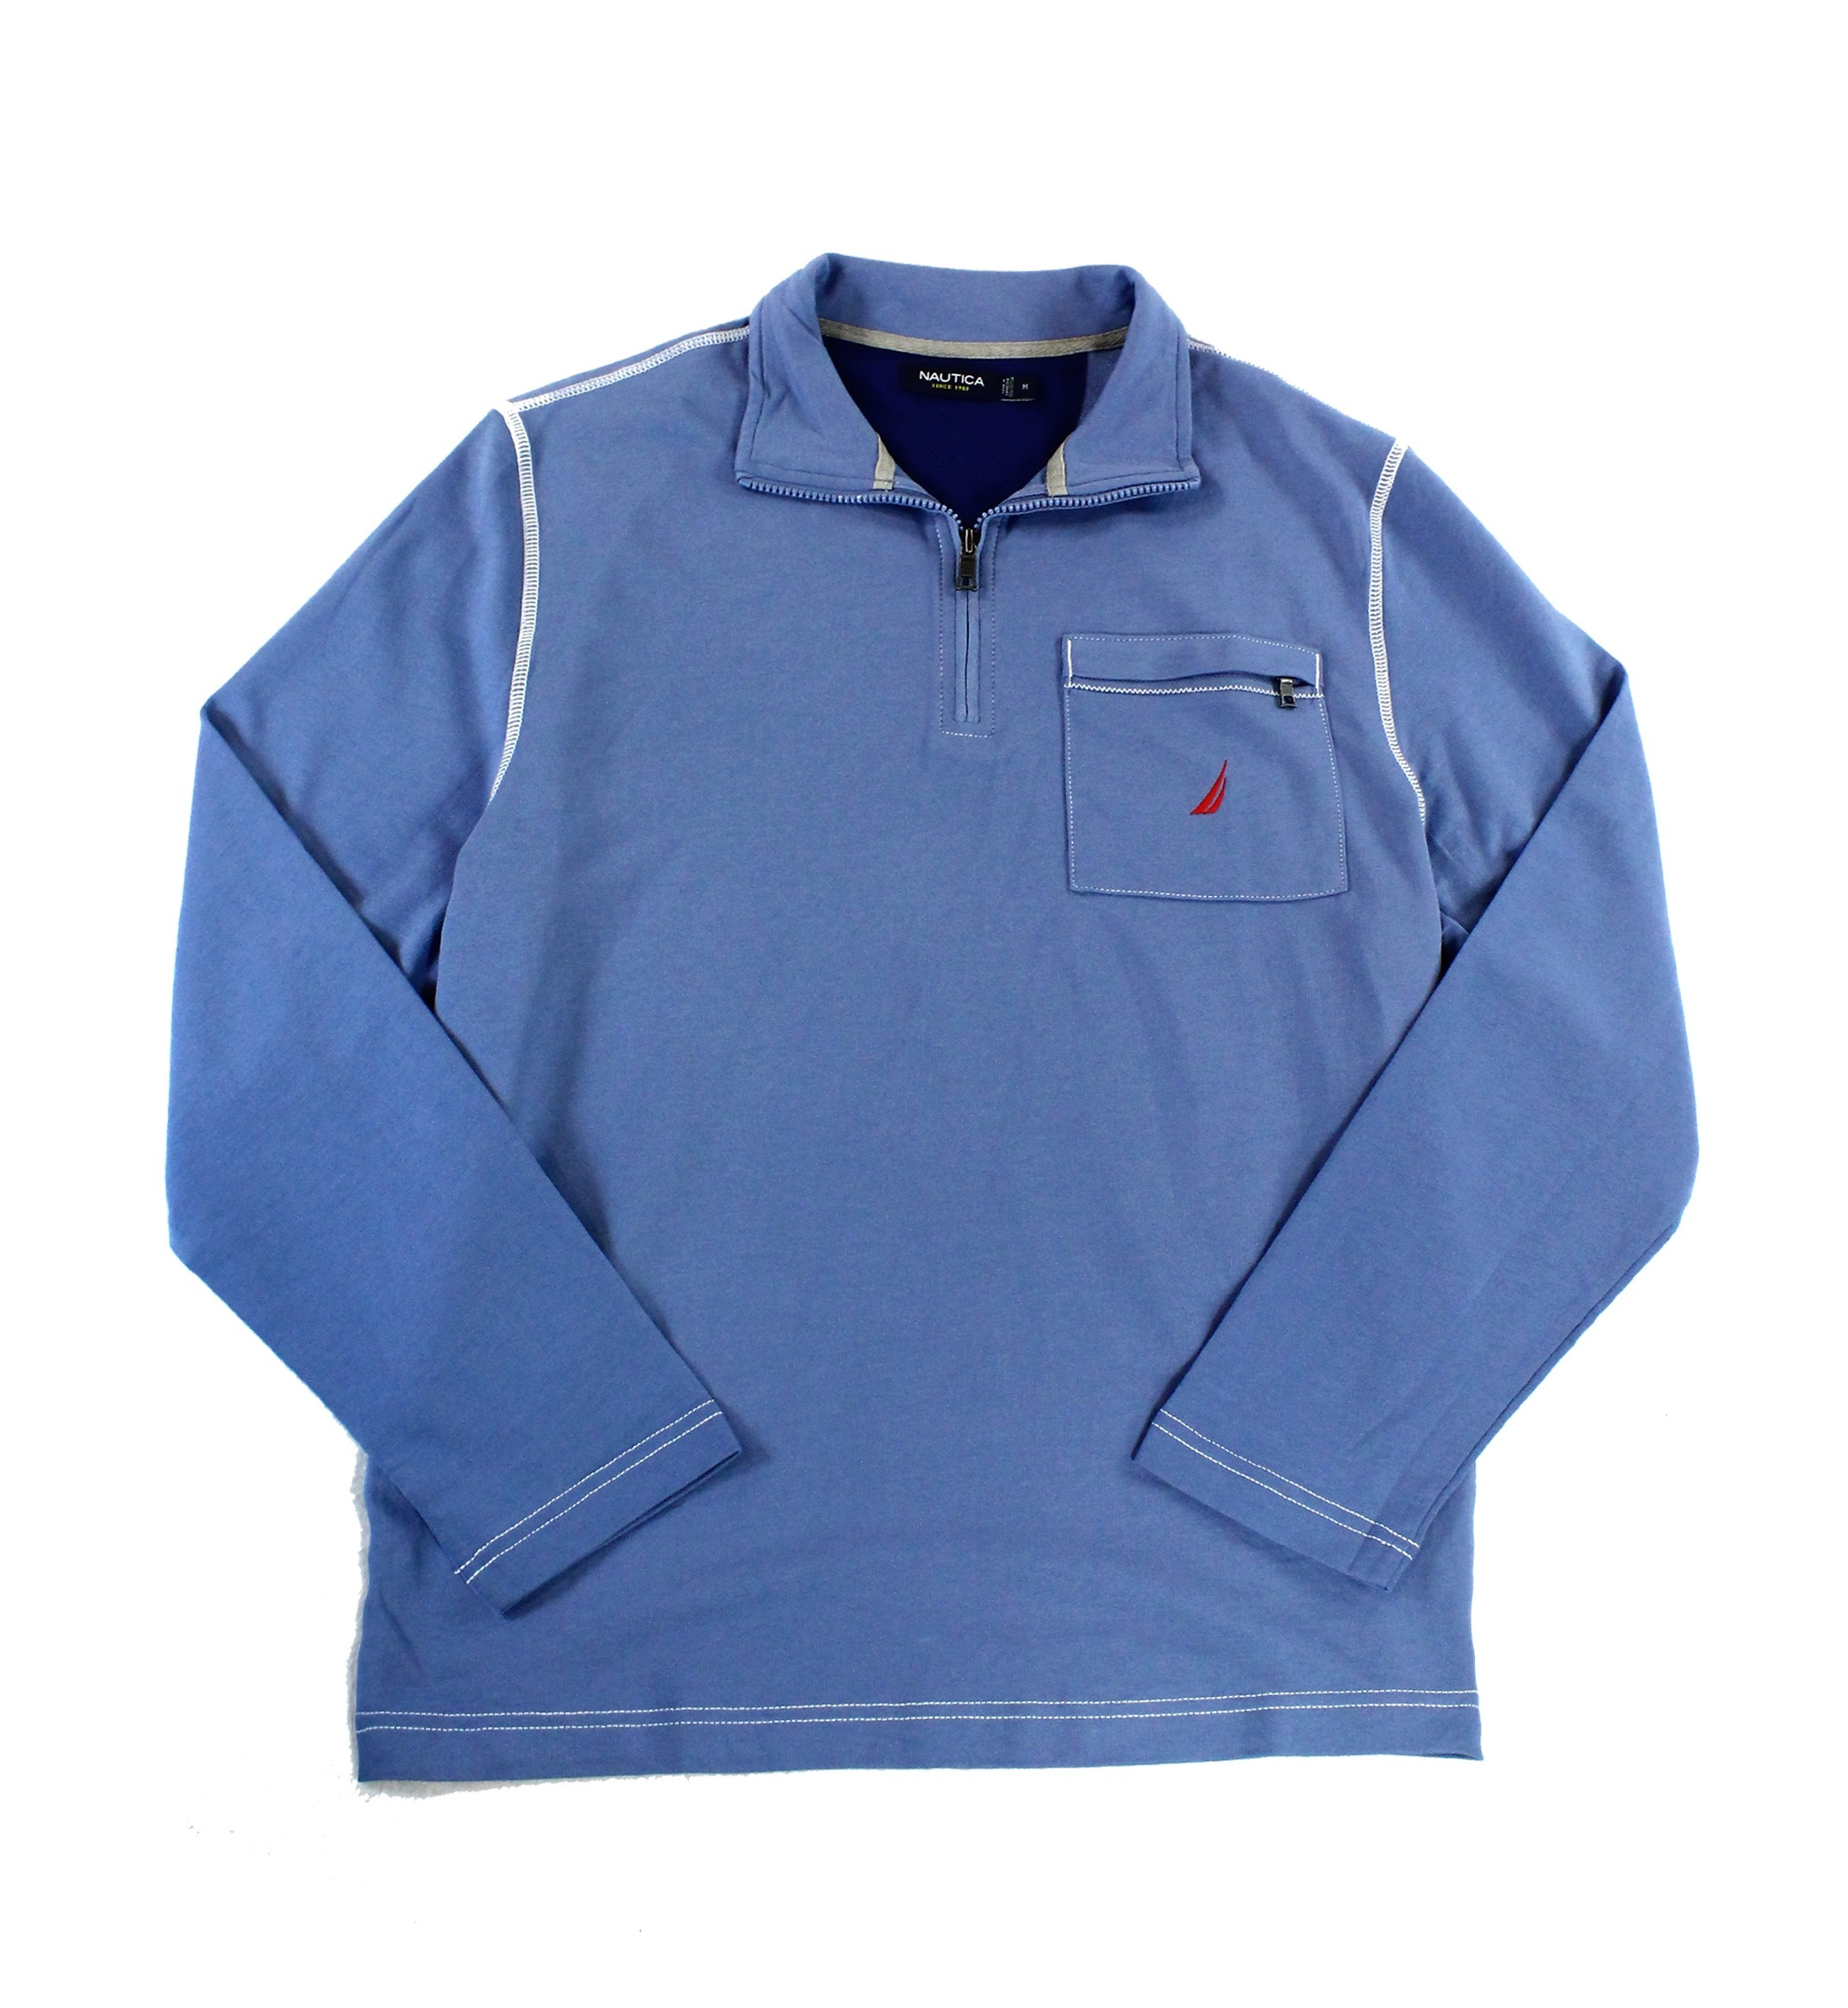 Nautica new mens sweater 1 4 zip pullover long sleeve for Pull over shirts for mens